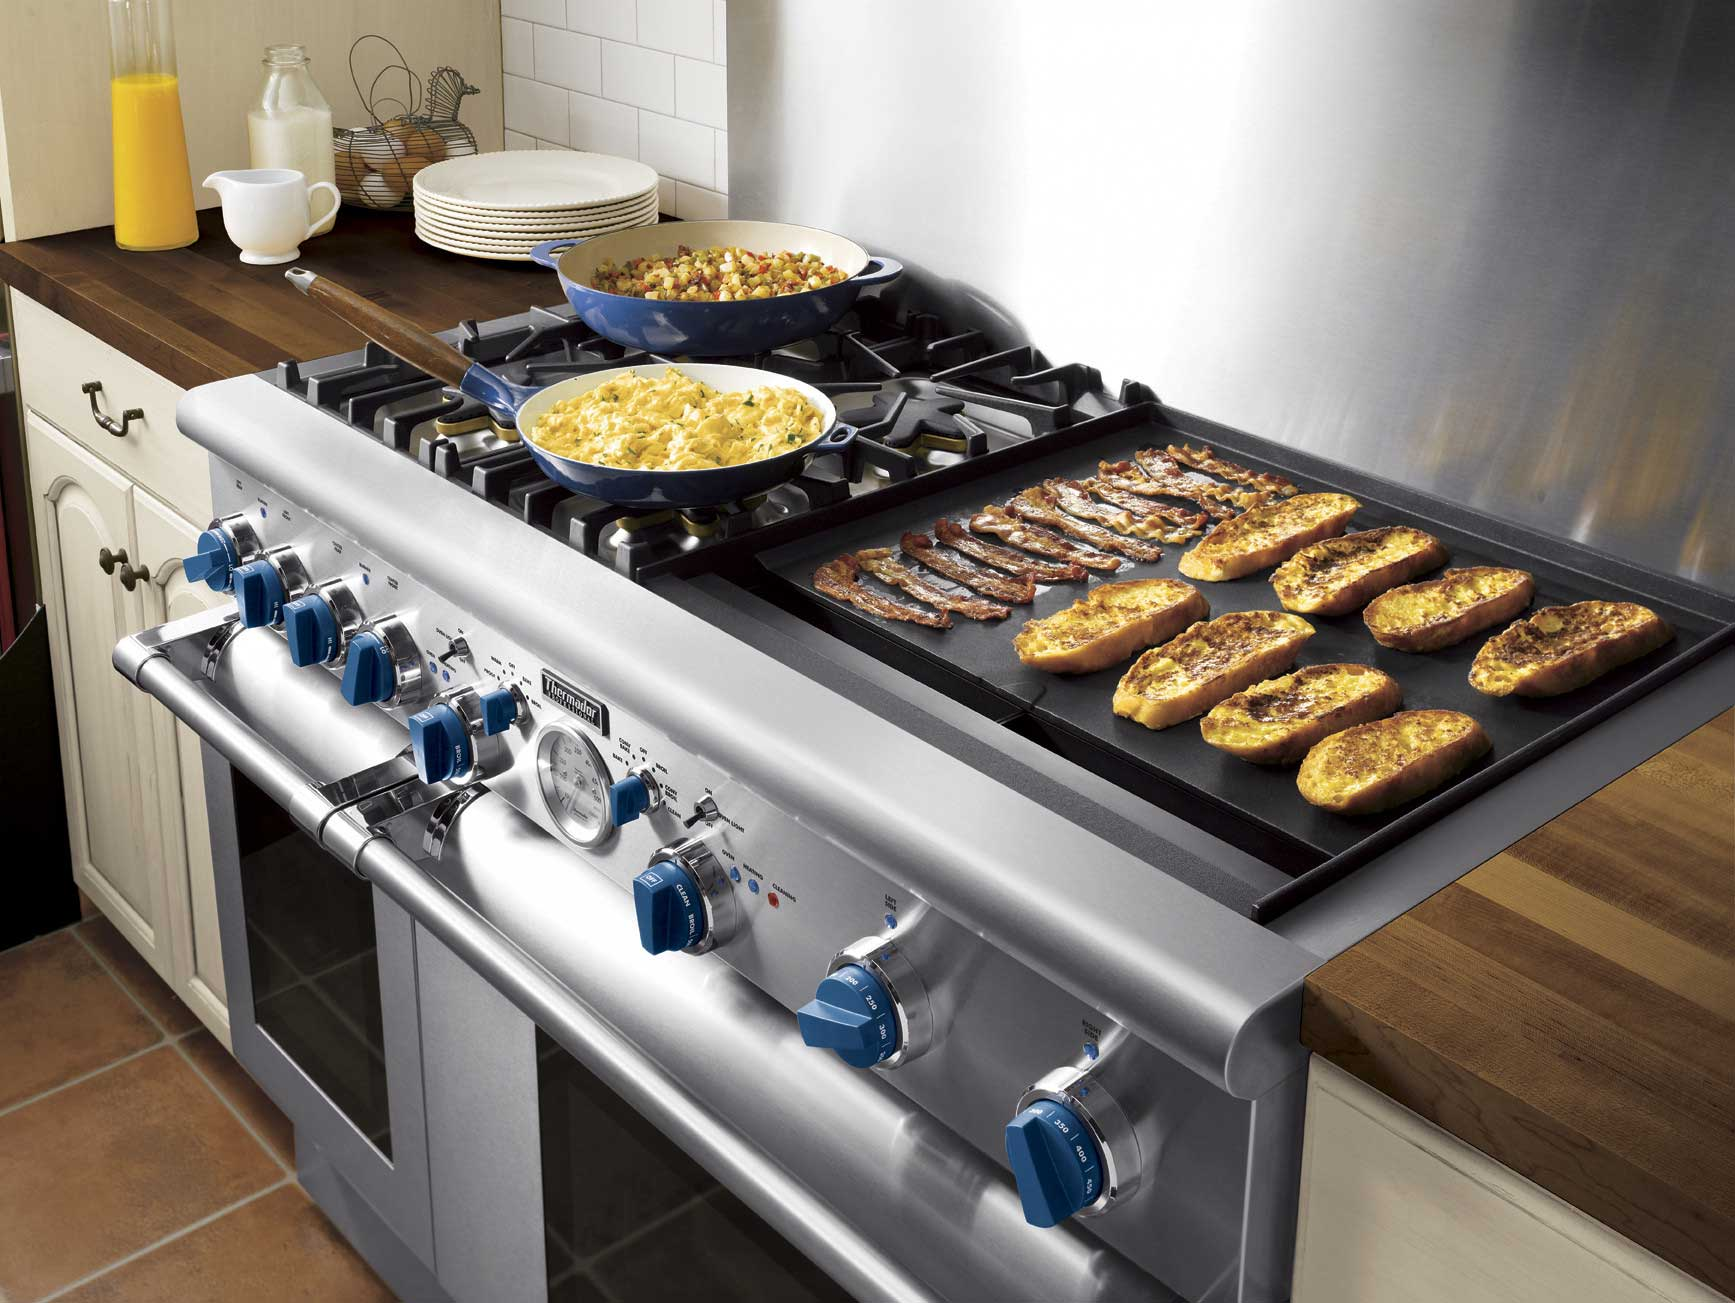 Stove Top Griddle